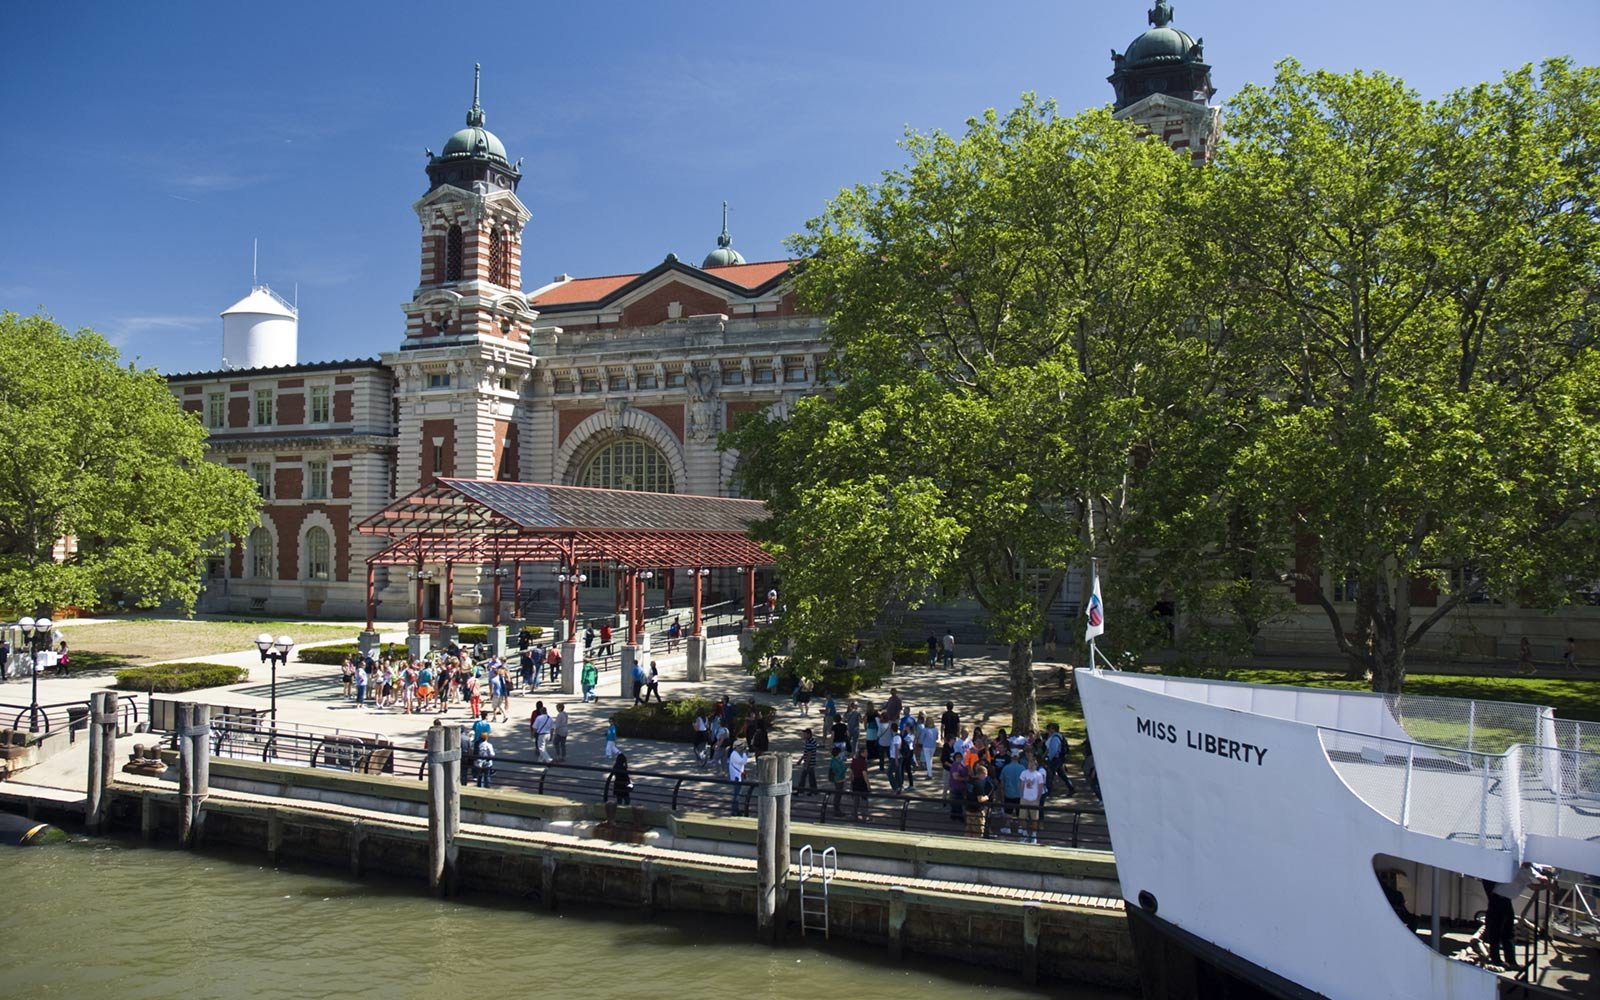 Ellis Island immigration station, New York City